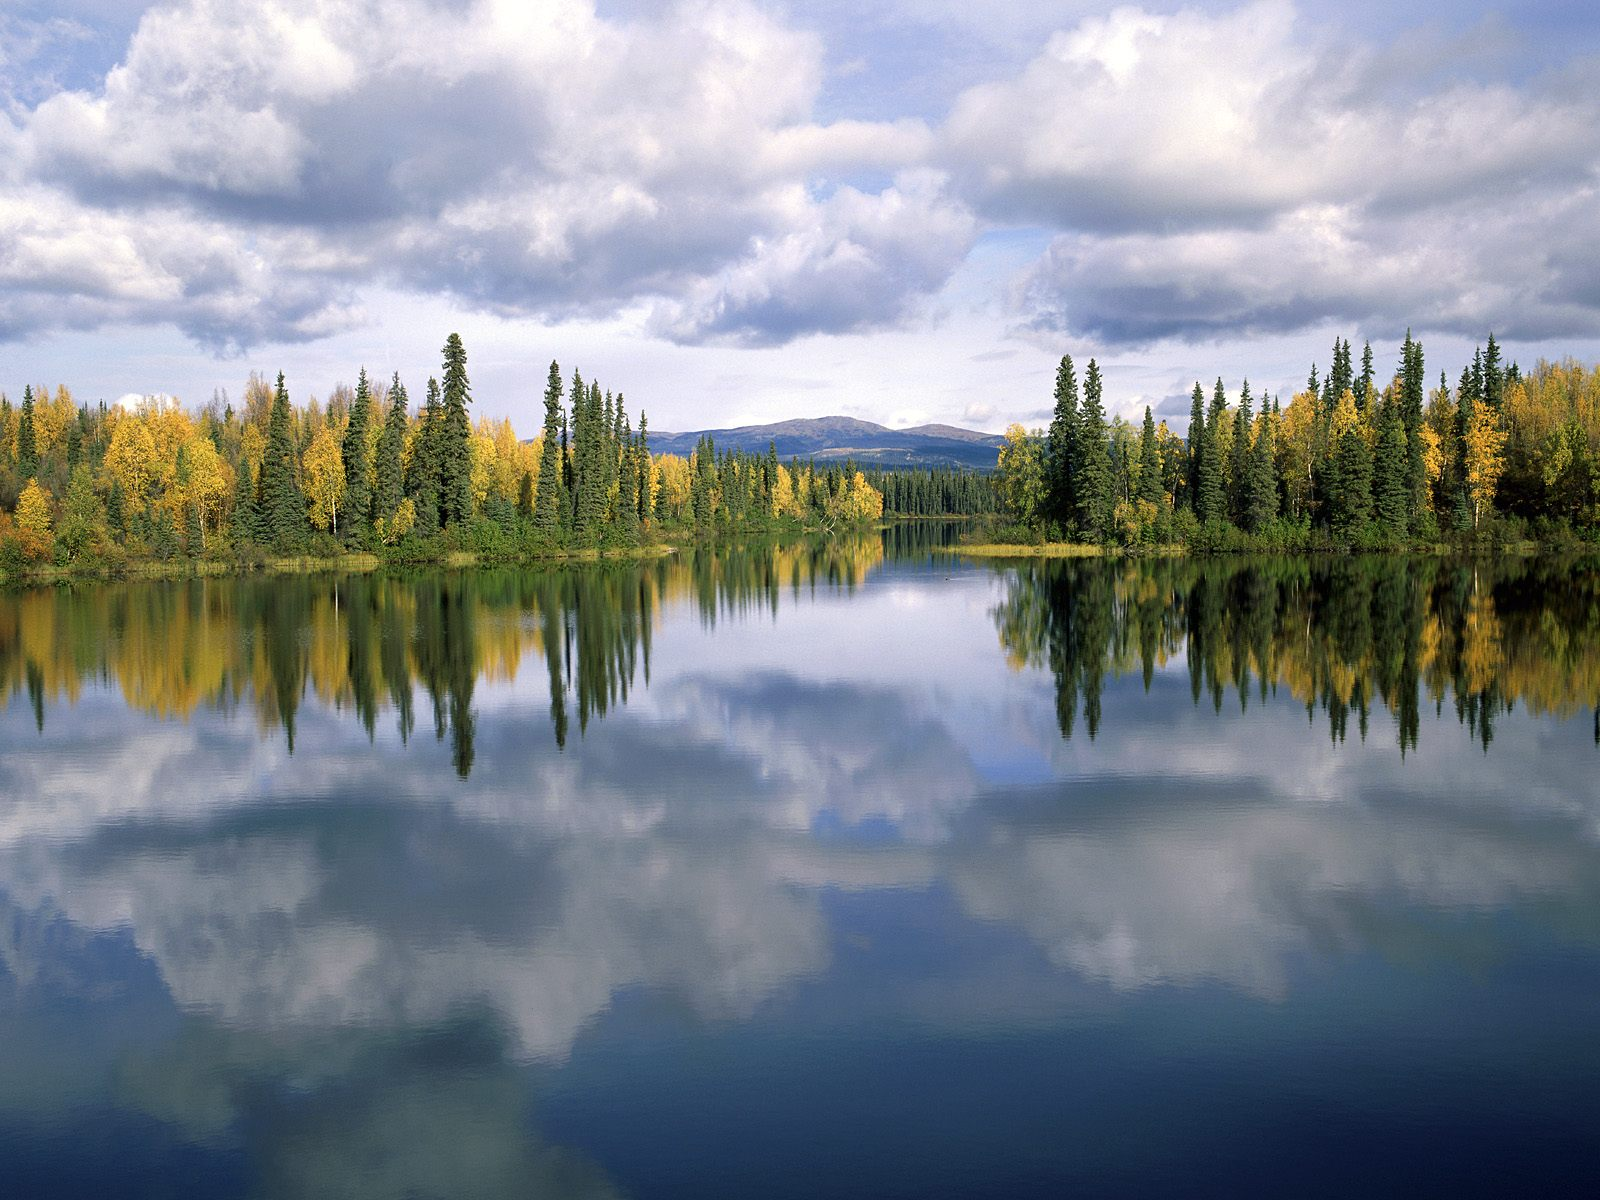 Dragon Lake Yukon Canada photo Dragon Lake Yukon Canada wallpaper 1600x1200